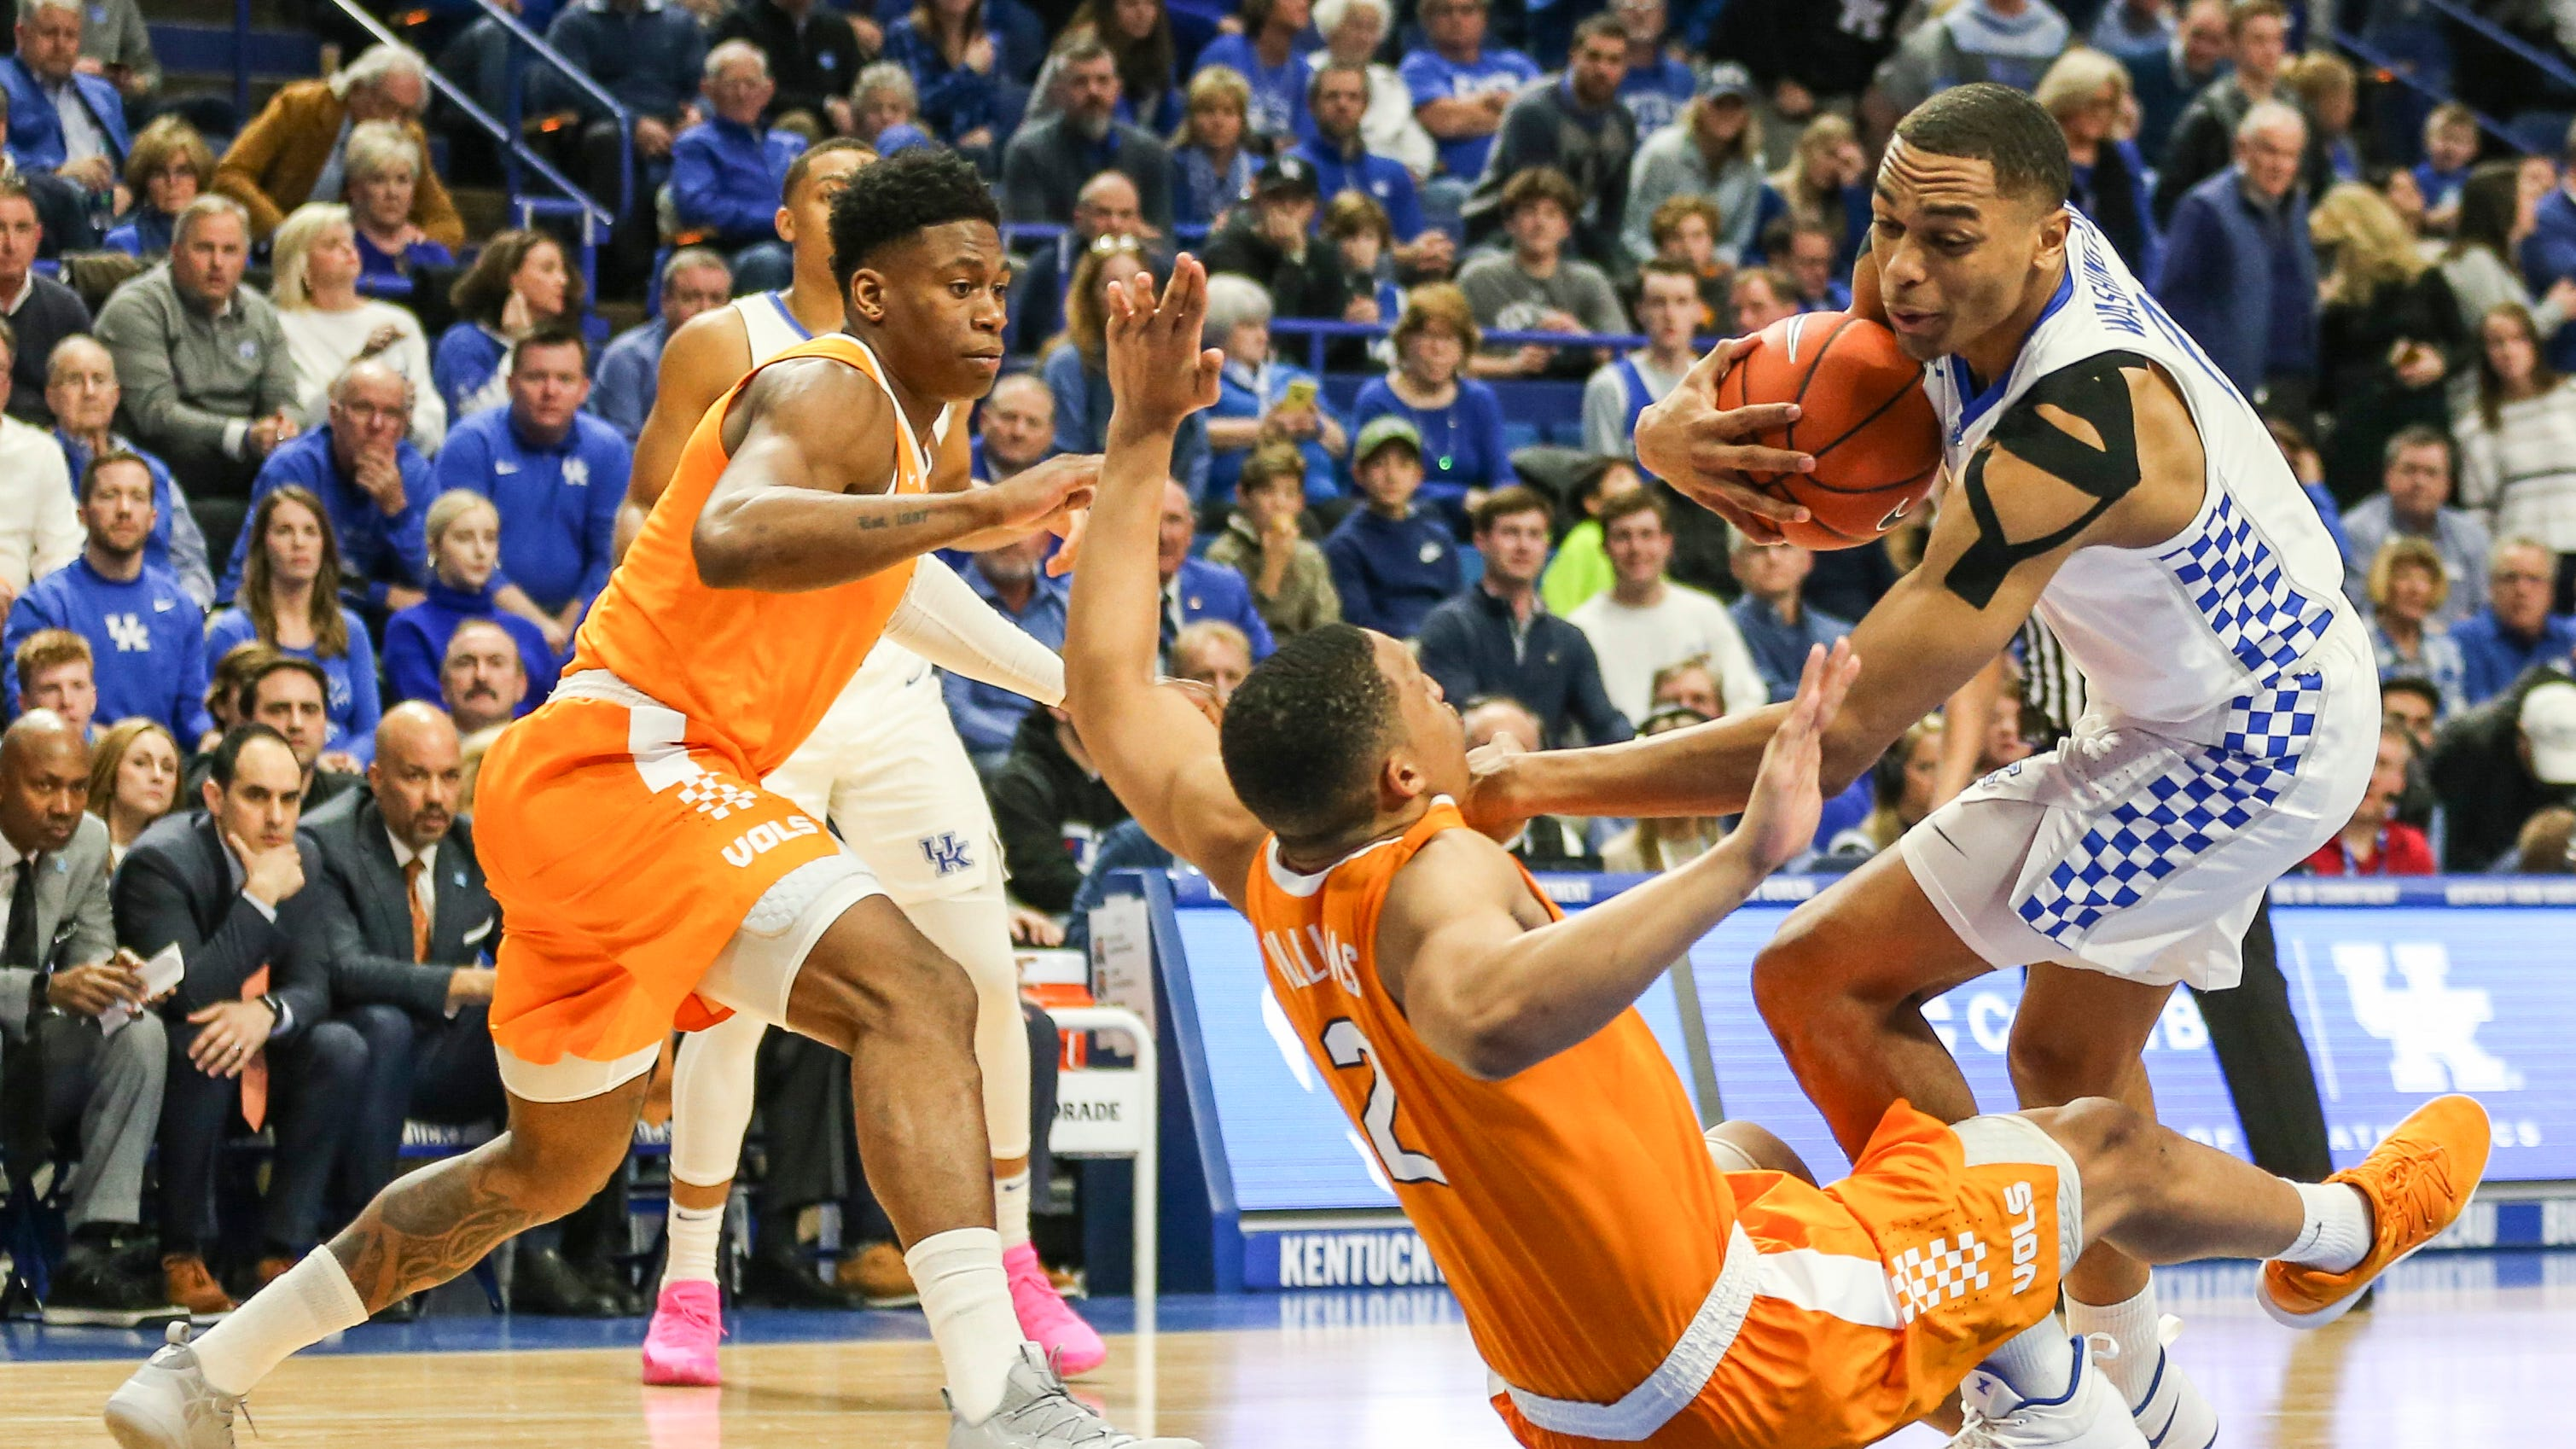 Uk Basketball Uk Vs Tenn: Tennessee Vols Vs Kentucky: On Twitter, Fans Remain